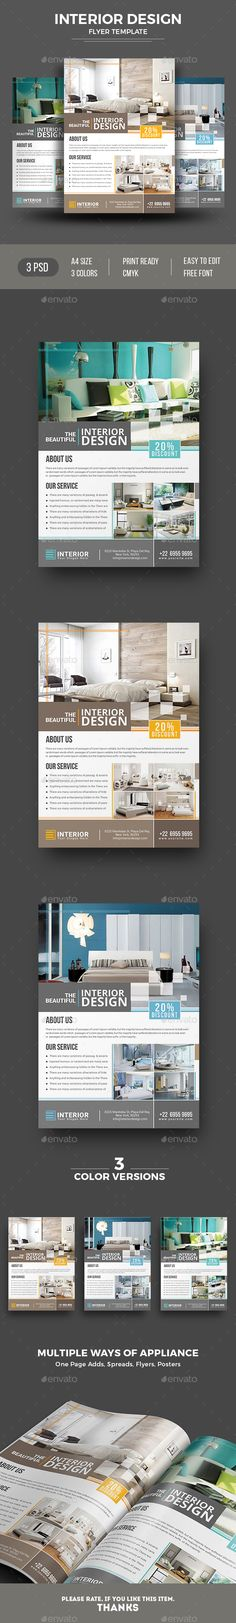 Interior Design Flyer | Open House PSD Flyer Template | User Friendly | Premium Design with Free Fonts | Flexible + Multipurpose | Instant Download